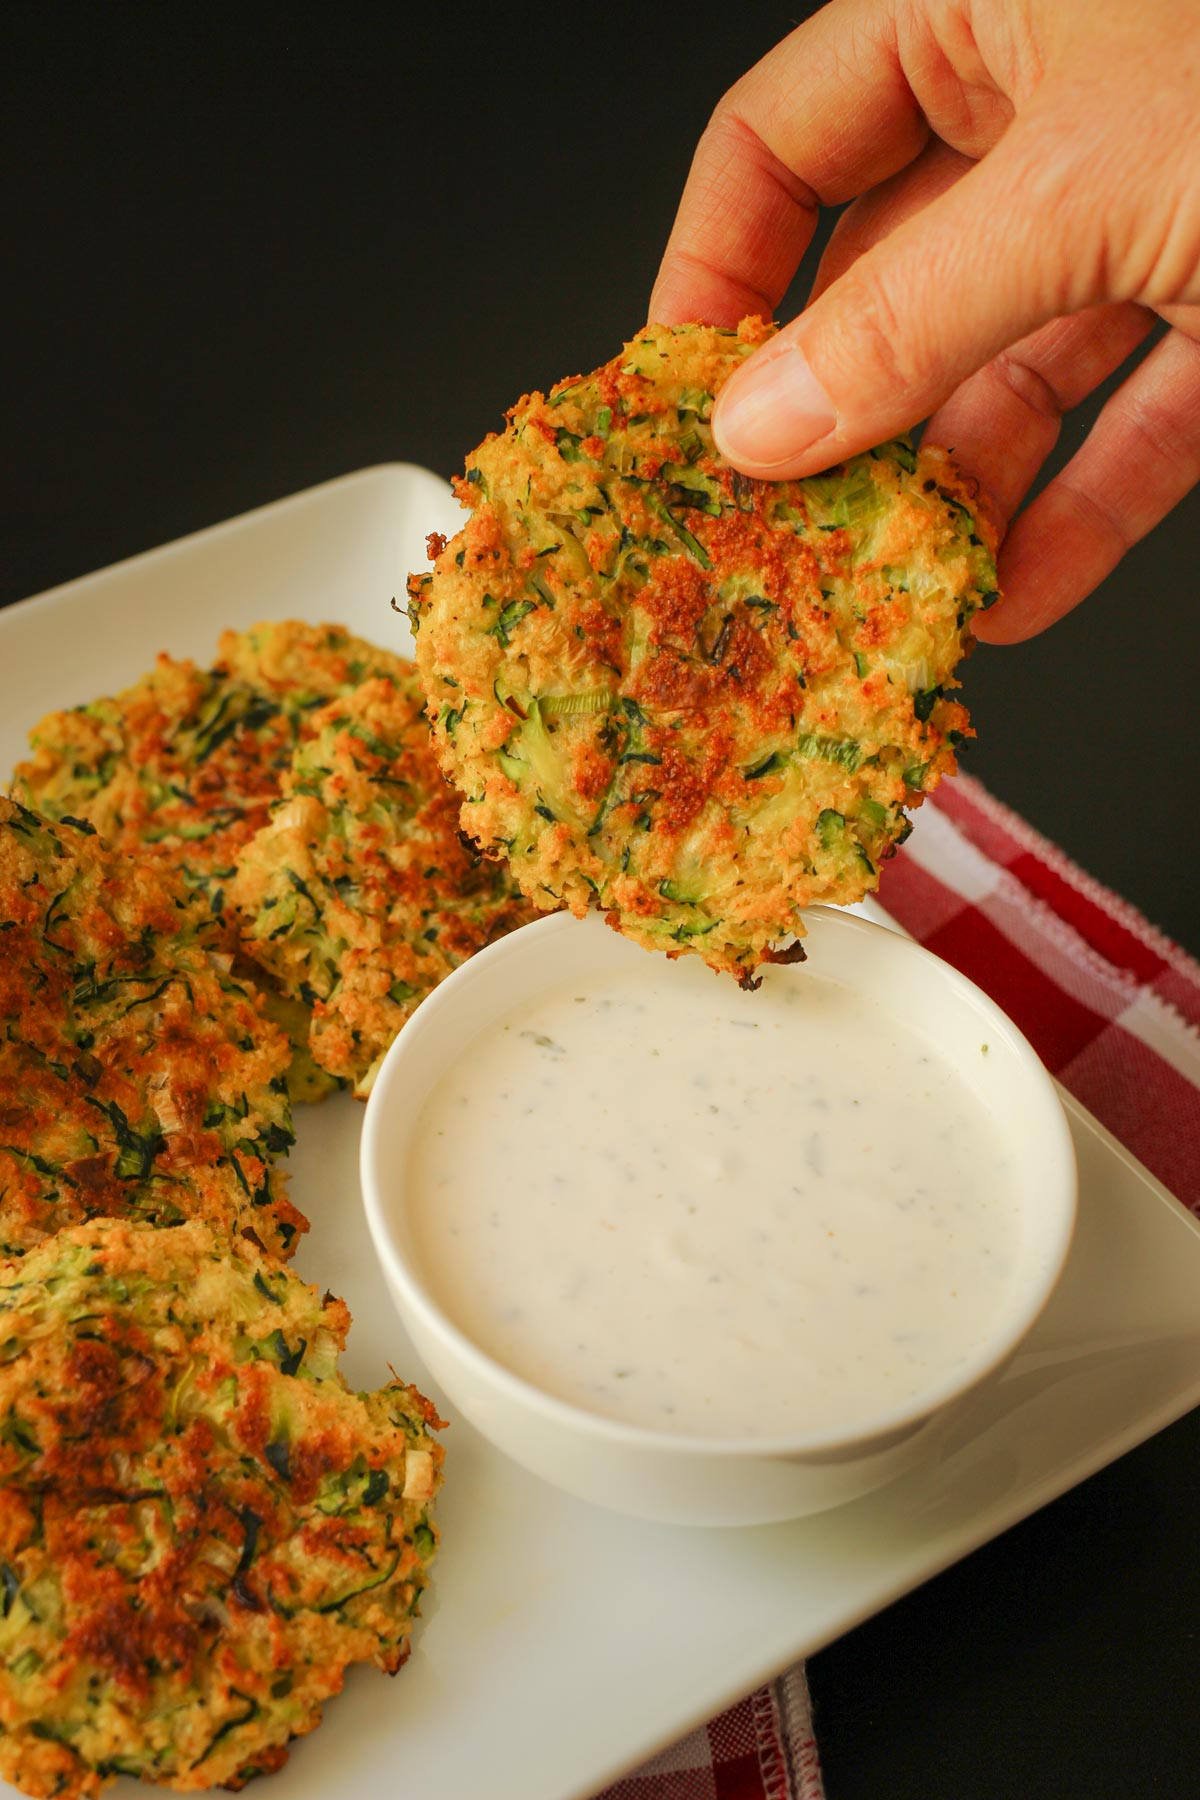 dipping a baked zucchini fritter into a small bowl of ranch dip.